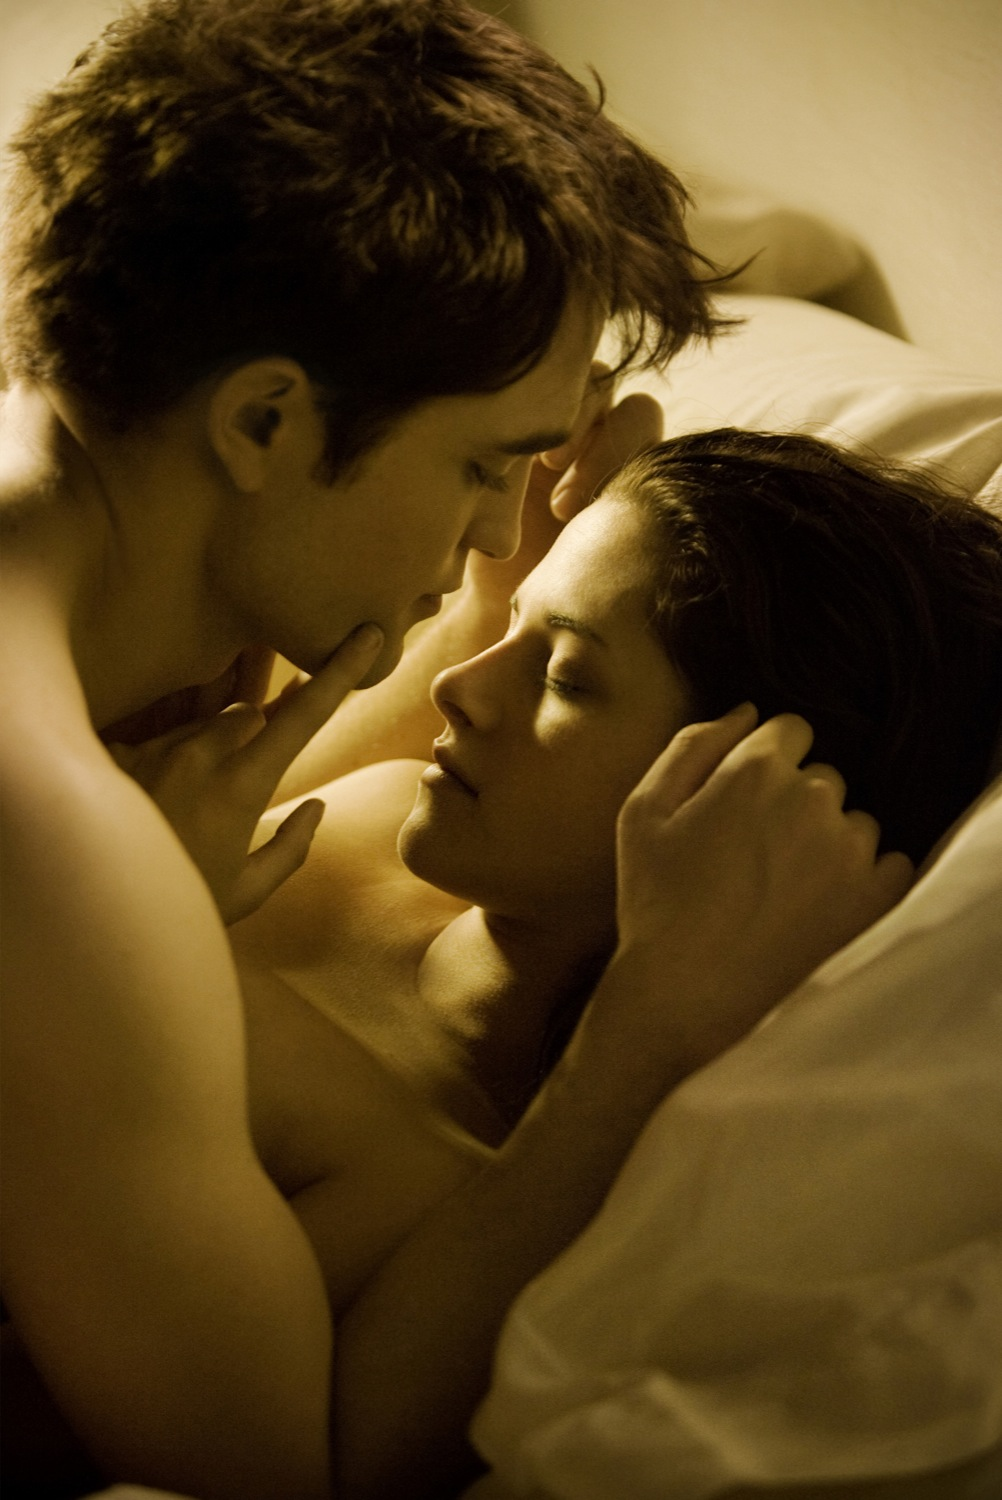 http://www.filmequals.com/wp-content/uploads/2011/05/twilight-breaking-dawn-movie-photo-01.jpg